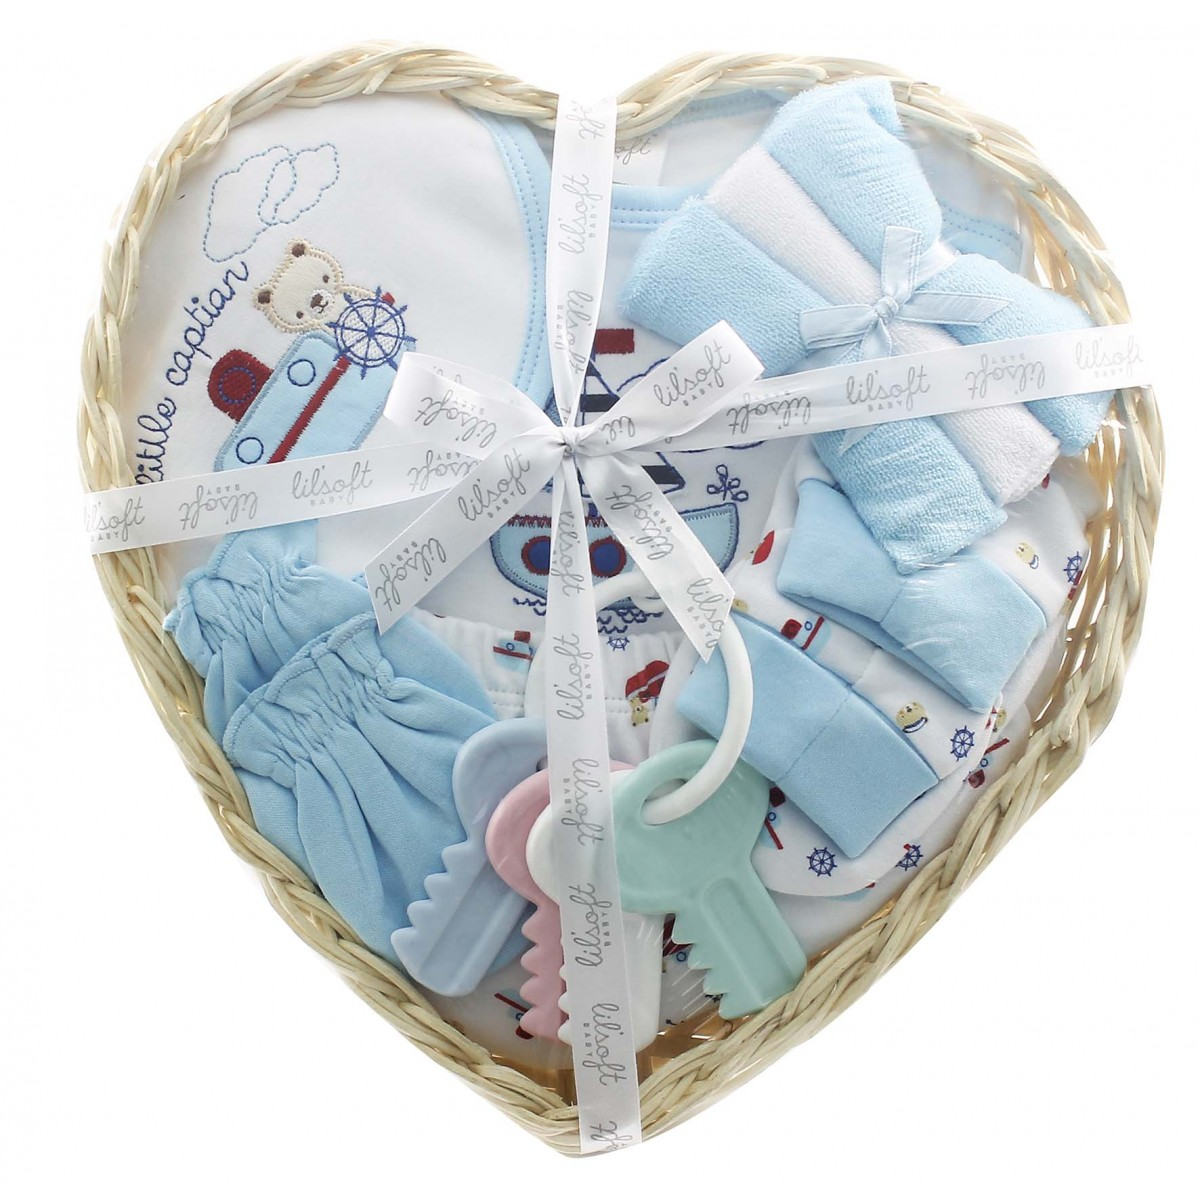 Baby Gift Sets : Pcs baby gift set for lilsoft